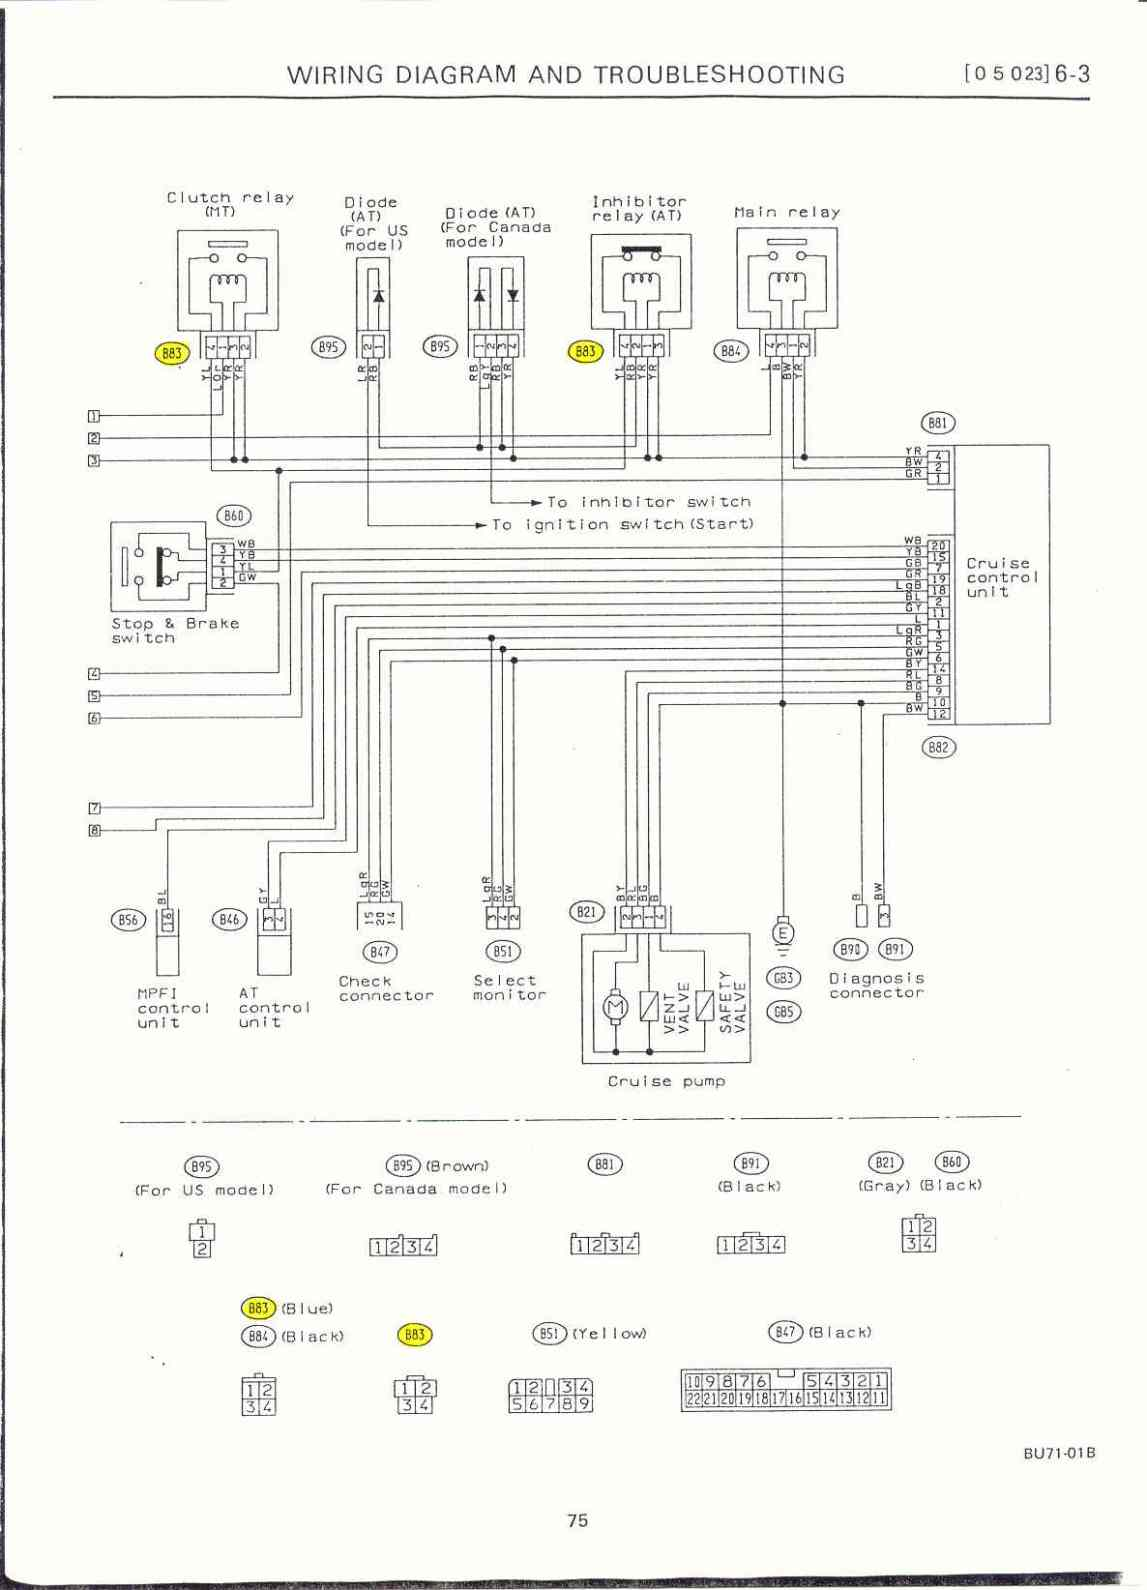 2000 subaru forester wiring diagram 2000 image 99 forester radio wiring diagram wiring diagram on 2000 subaru forester wiring diagram